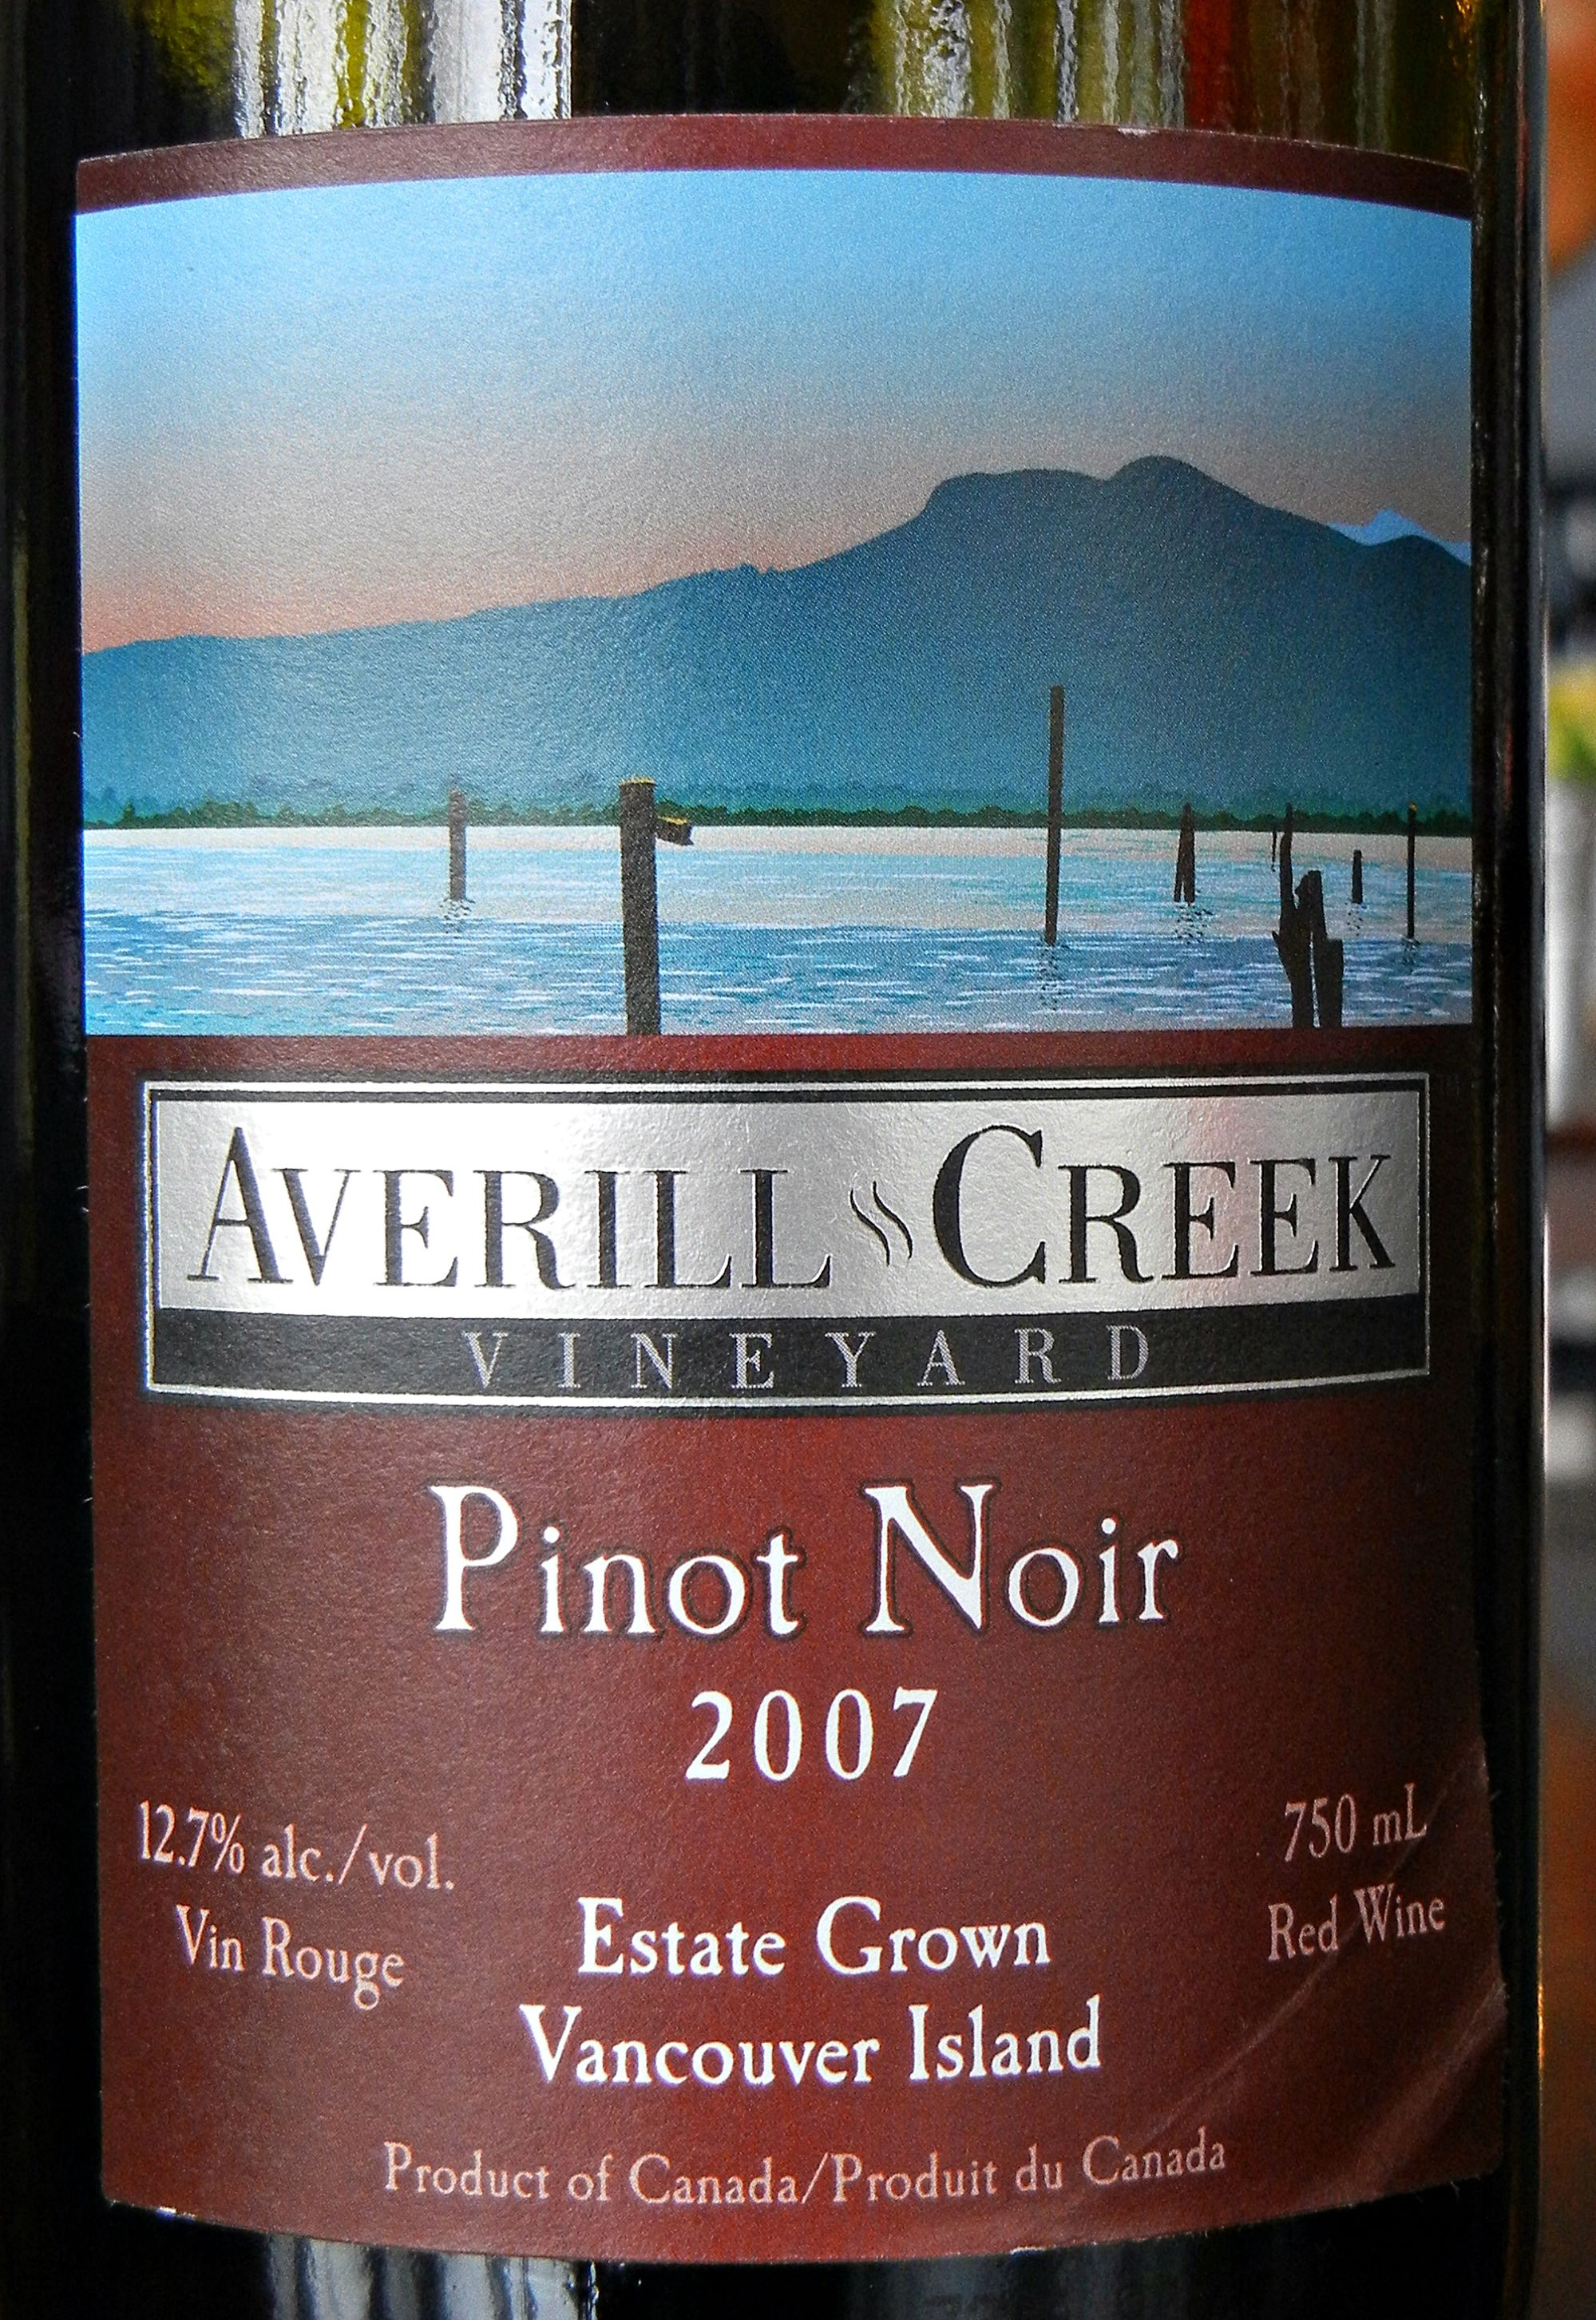 Averill Creek Pinot Noir 2007 Label - BC Pinot Noir Tasting Review 24